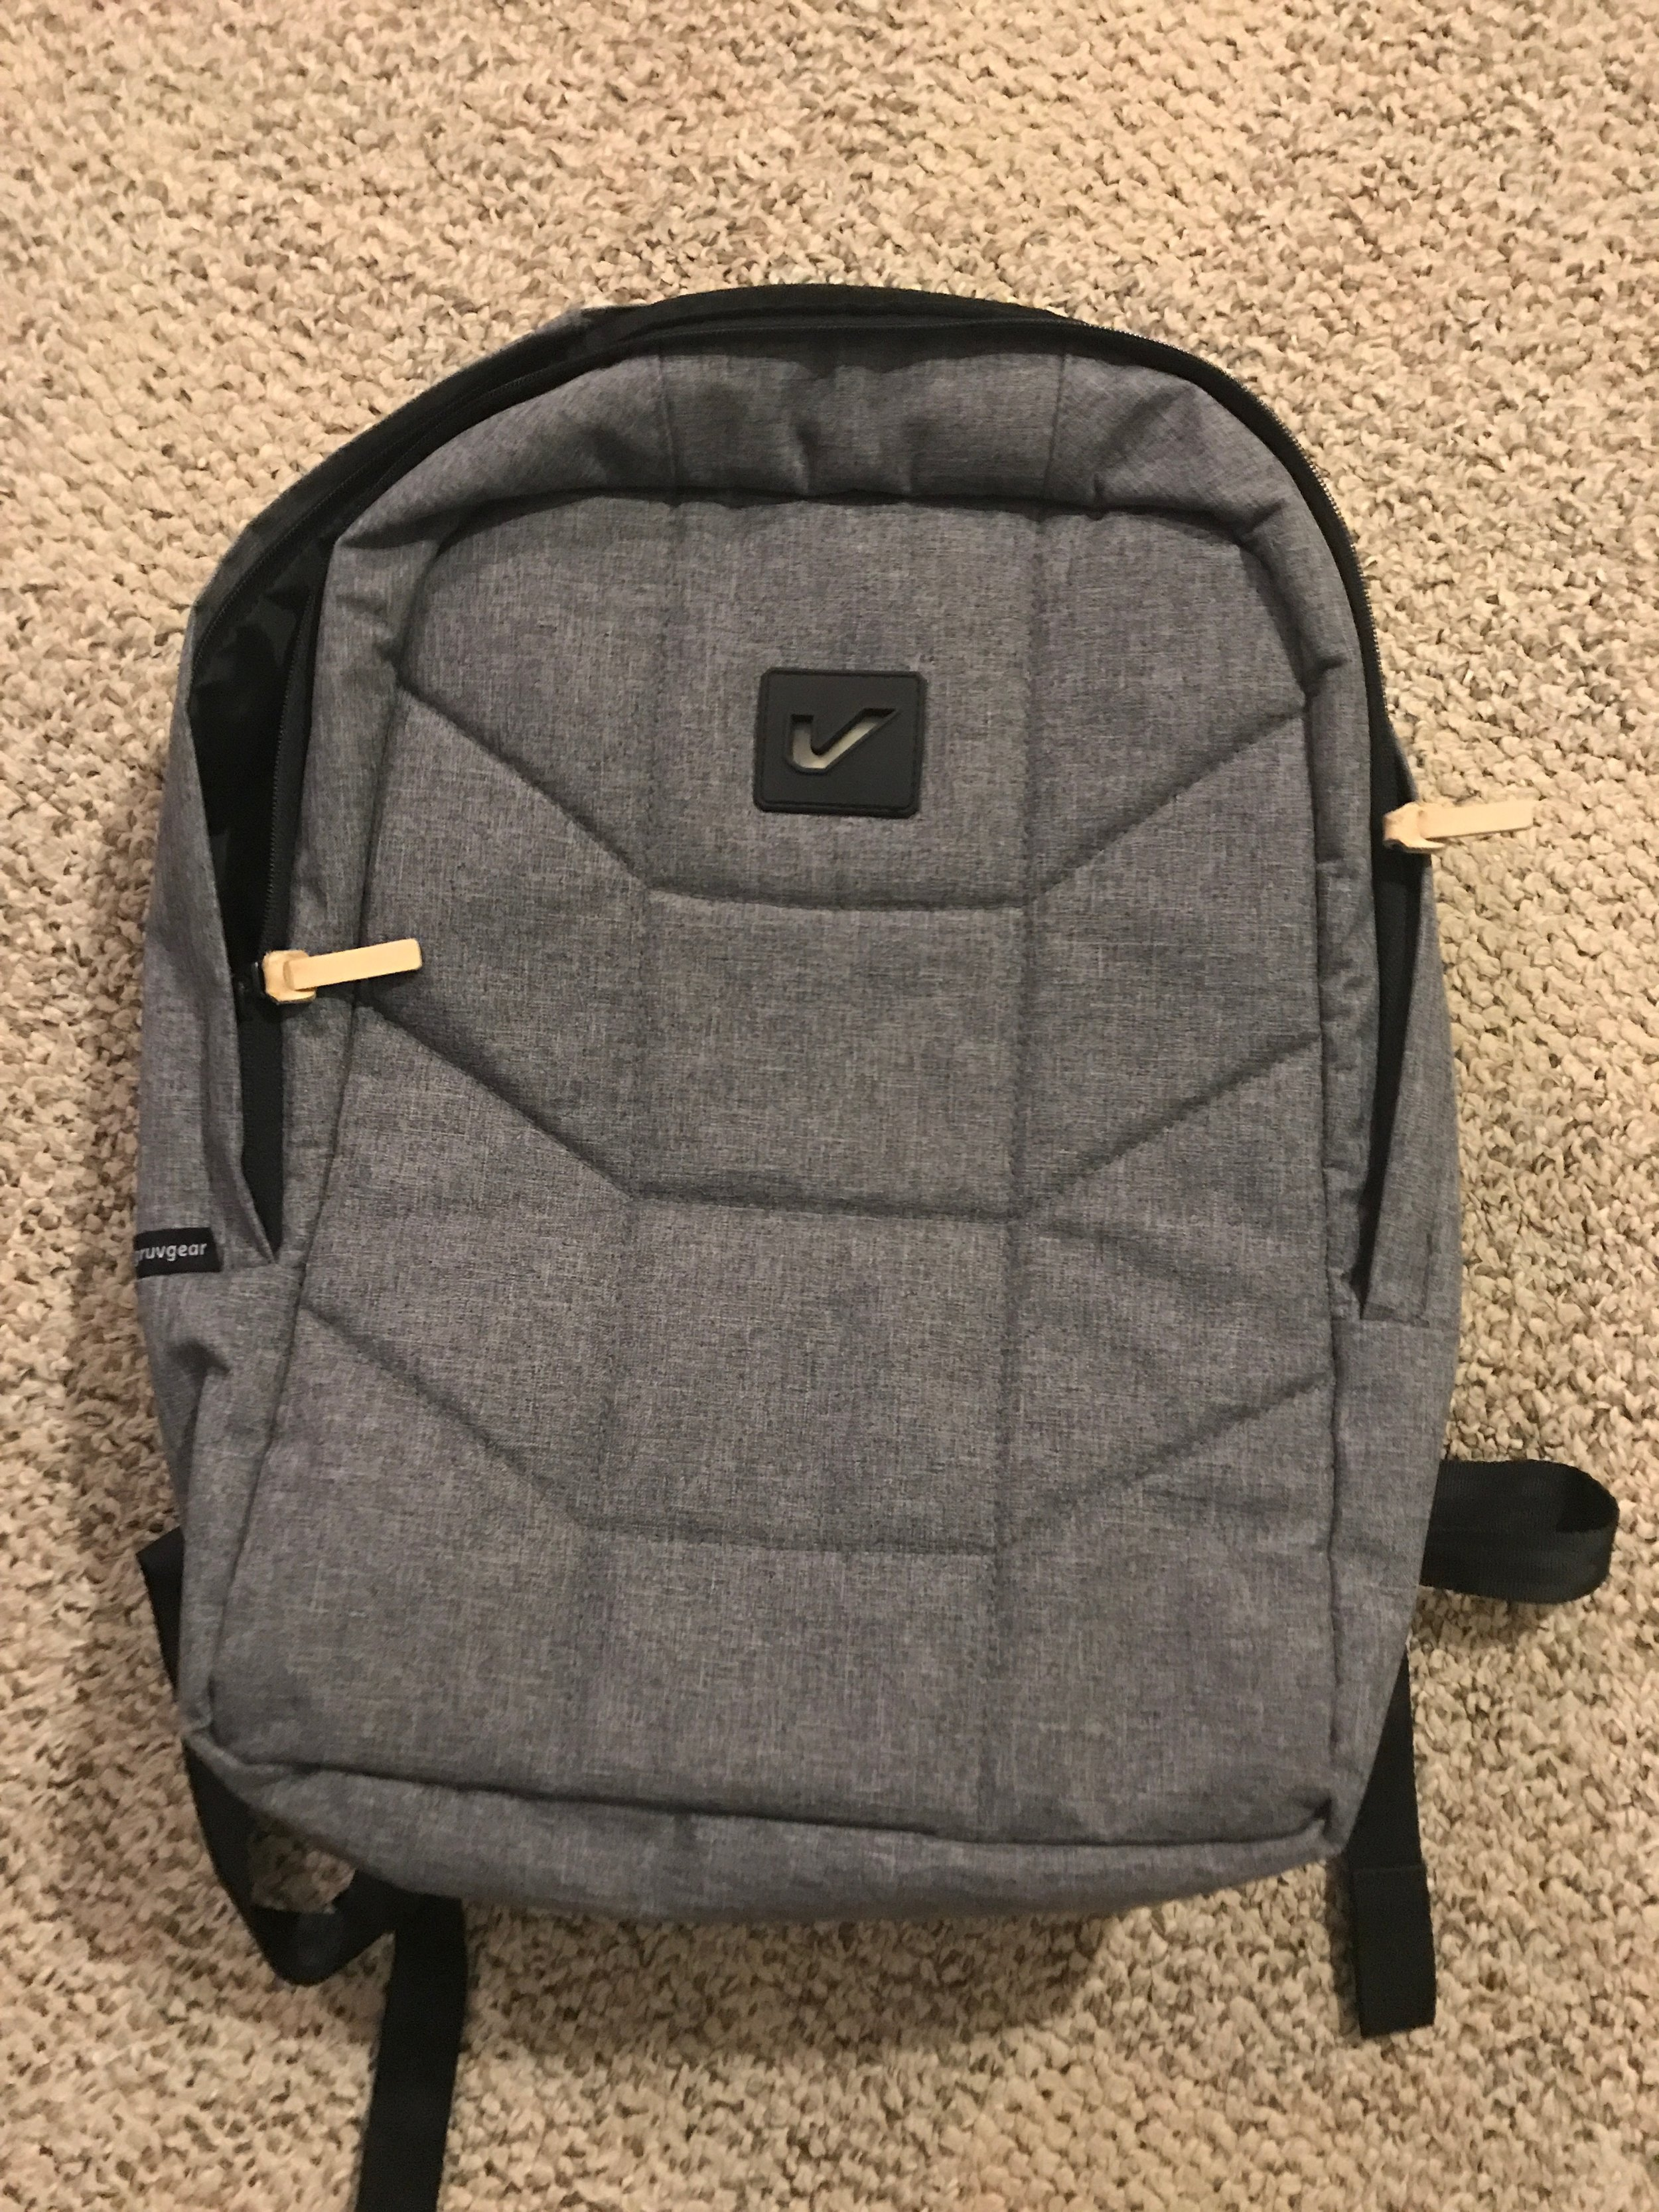 $20 LIKE NEW GruvGear Vibe backpack tan - the gruviest backpack for all of your day to day activities.RETAIL: $80